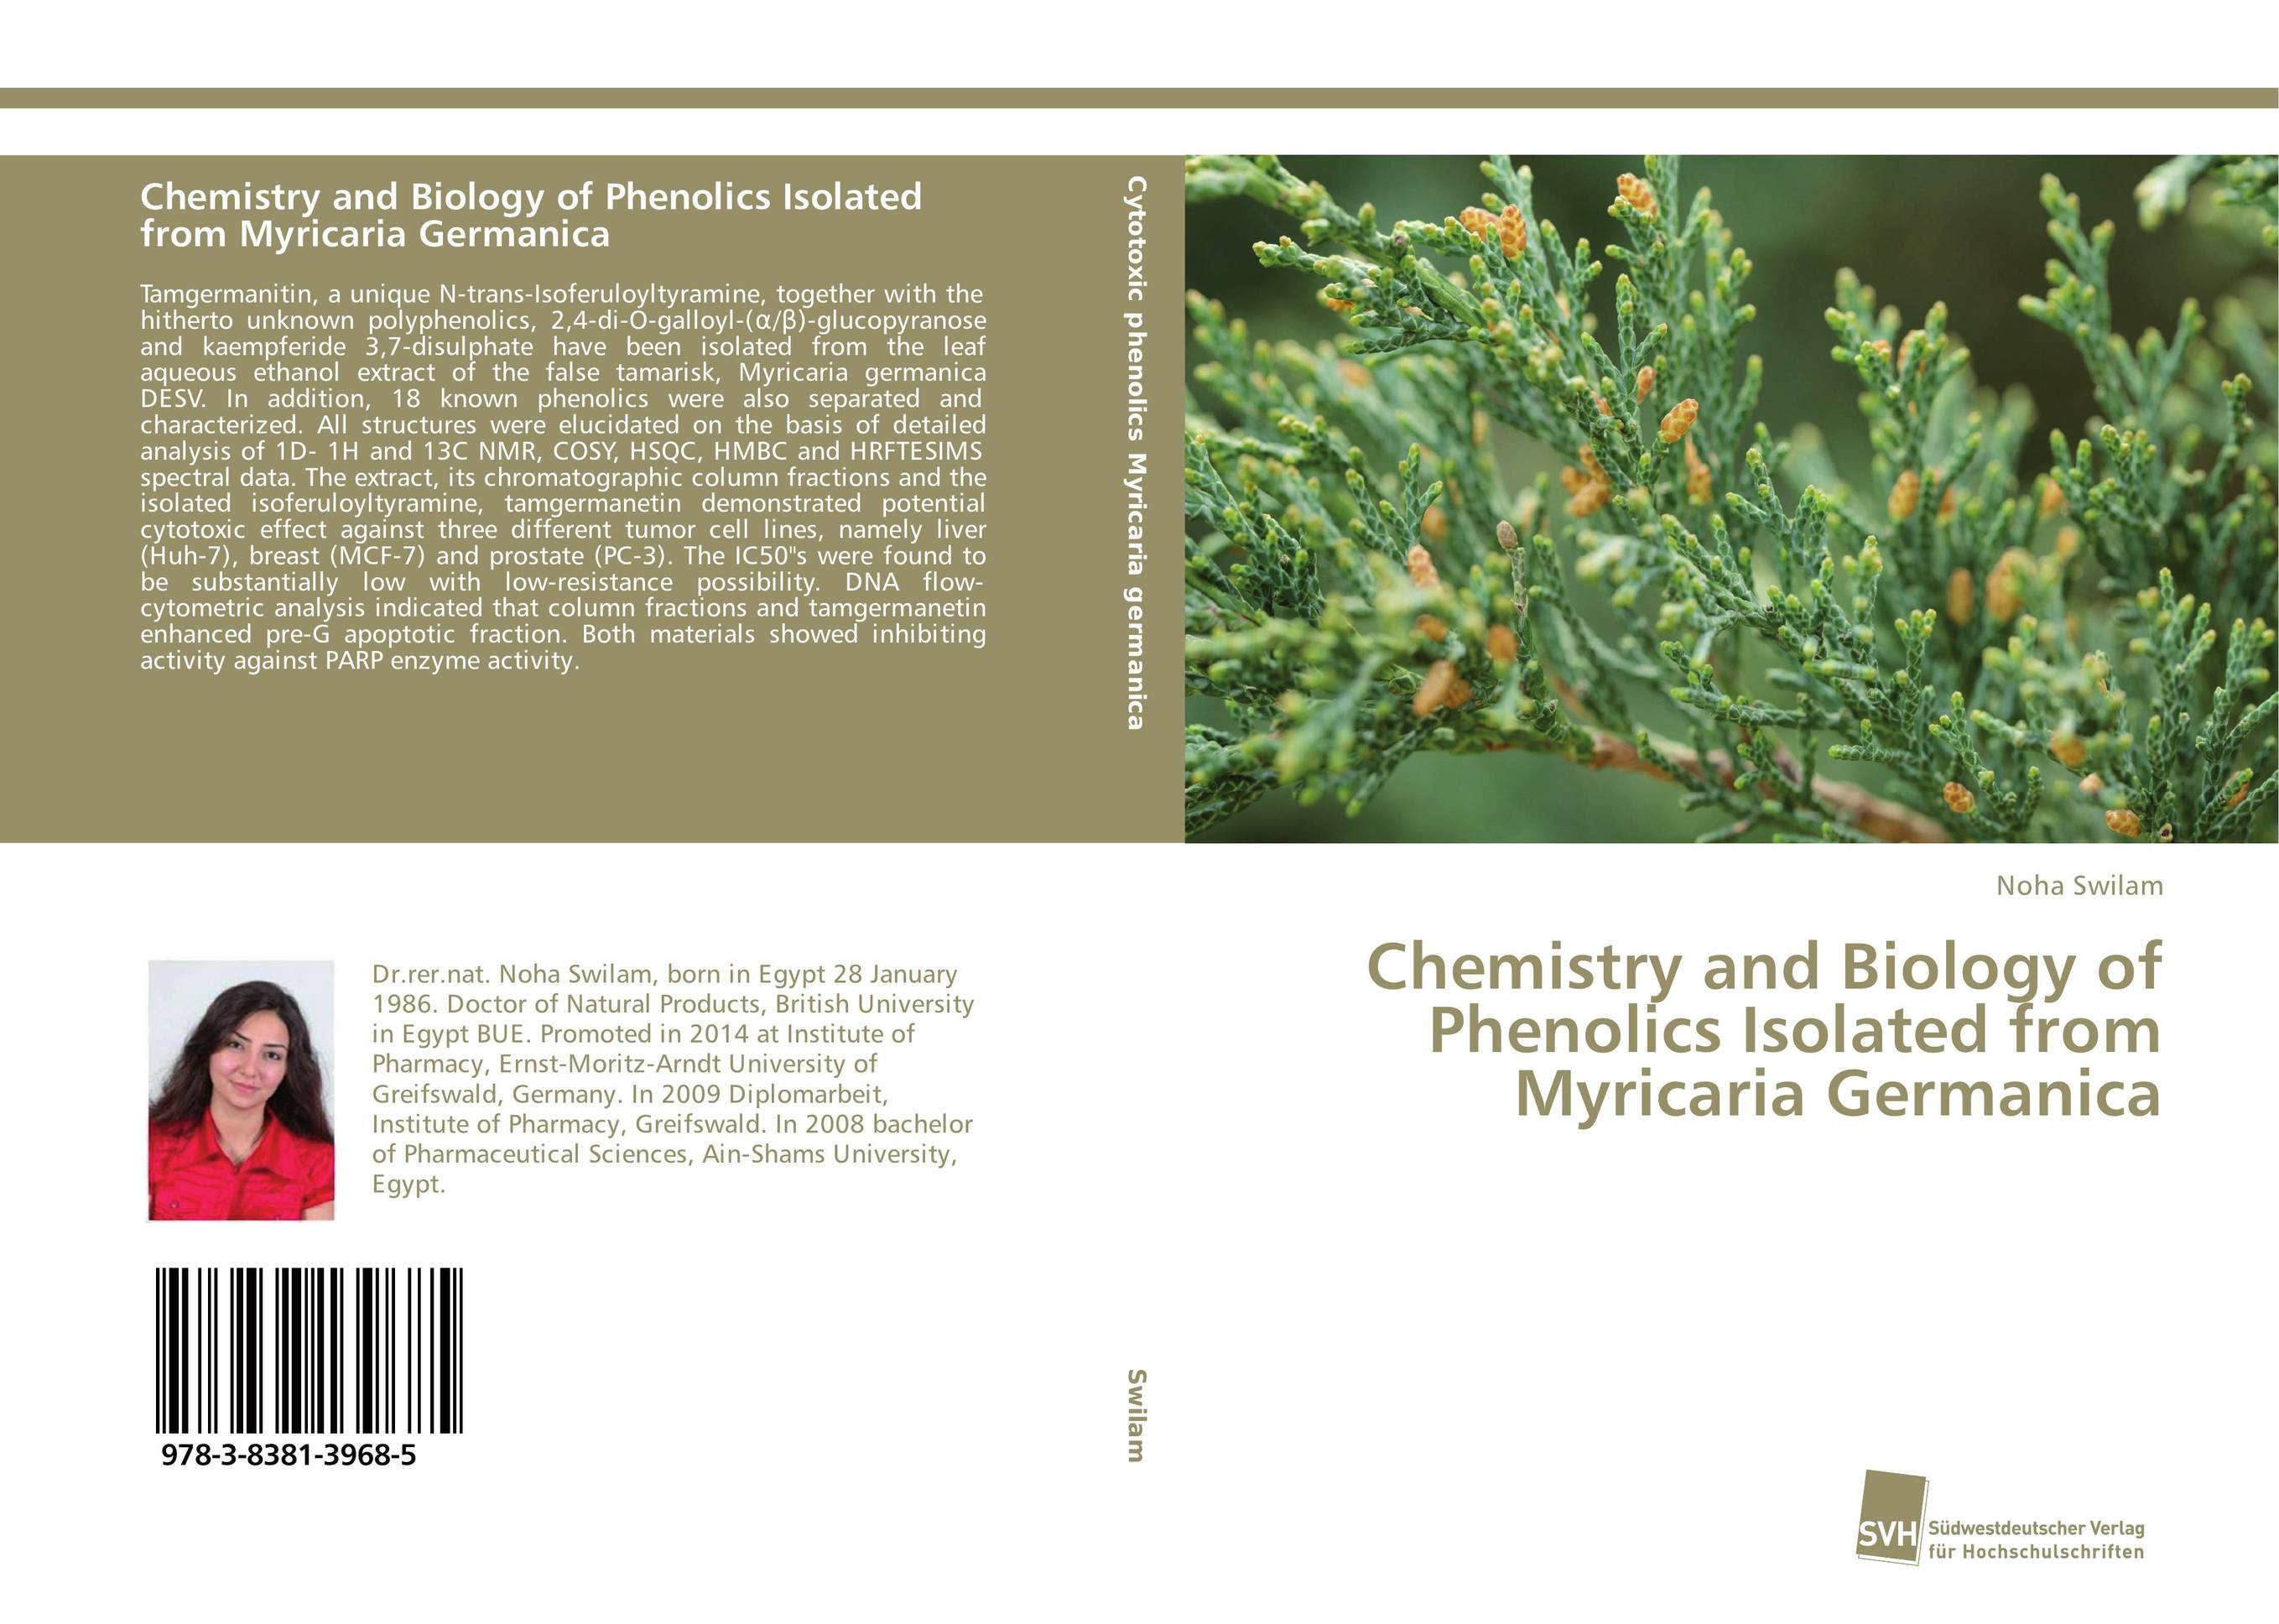 Chemistry and Biology of Phenolics Isolated from Myricaria Germanica chemistry and biology of heparin and heparan sulfate